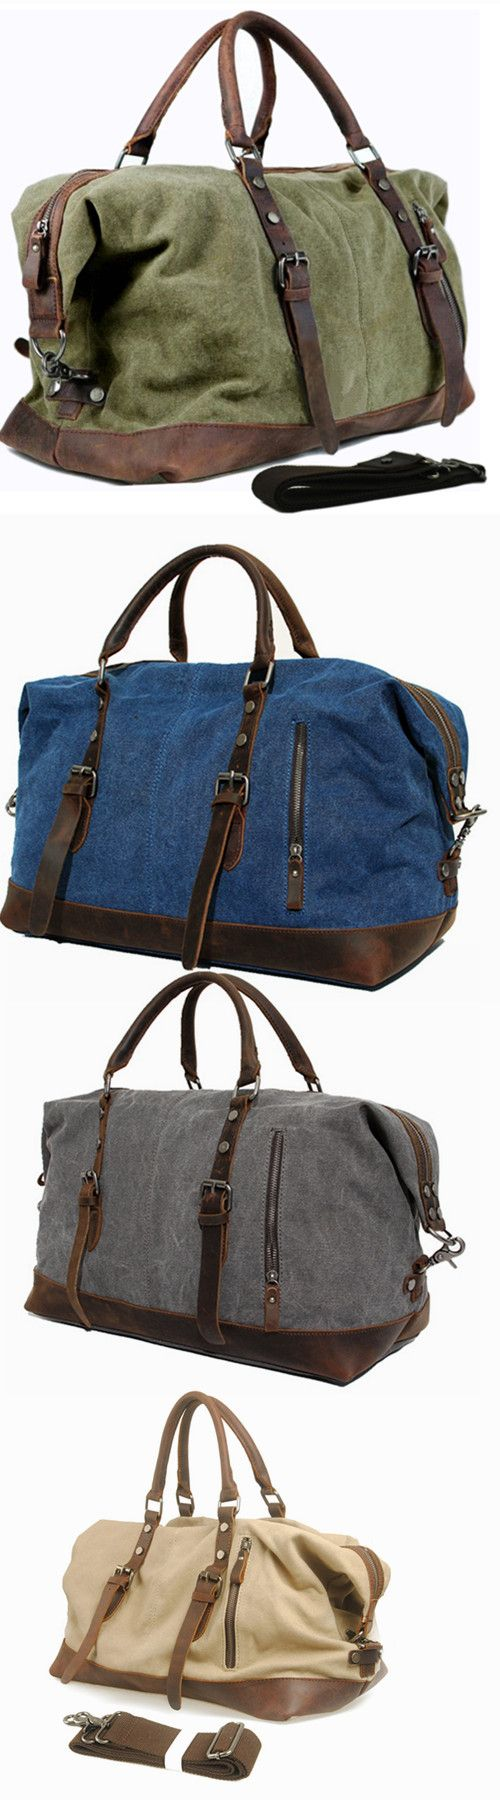 Vintage military Canvas Leather men travel bags Carry on Luggage bags Men Duffel bags travel tote large weekend Bag Overnight bagail.com